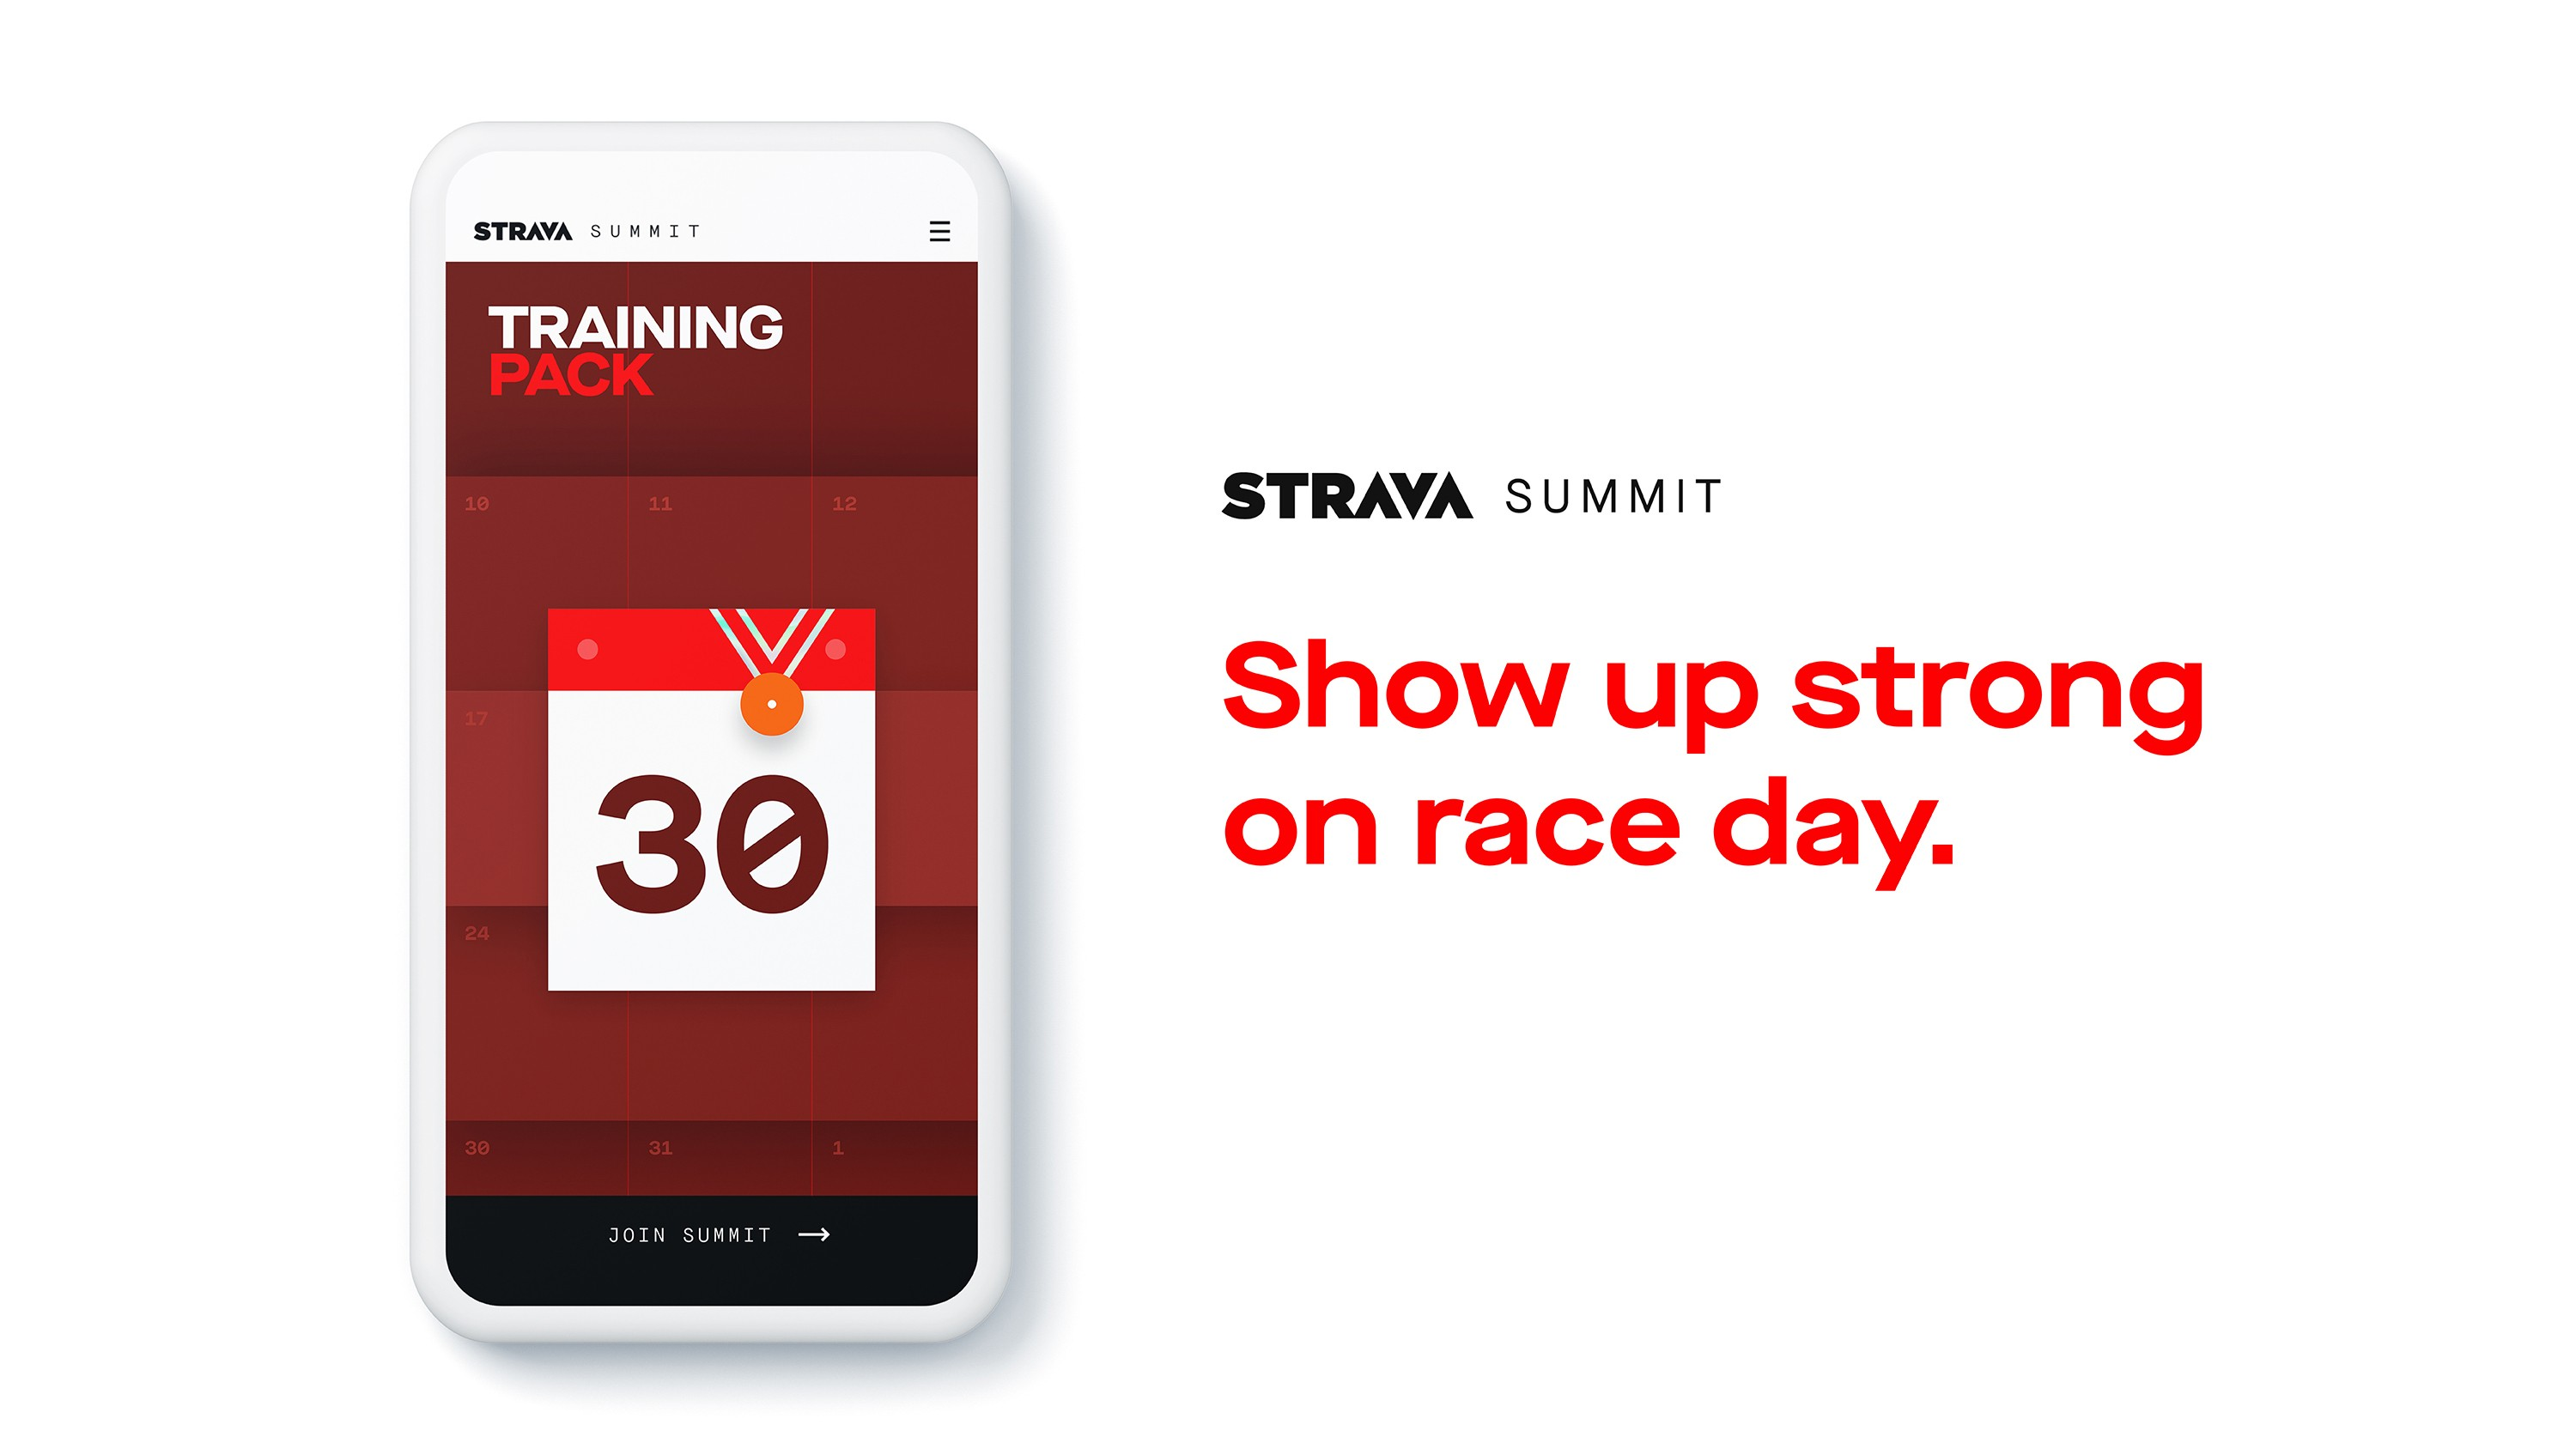 The Strava Training Pack is for... training